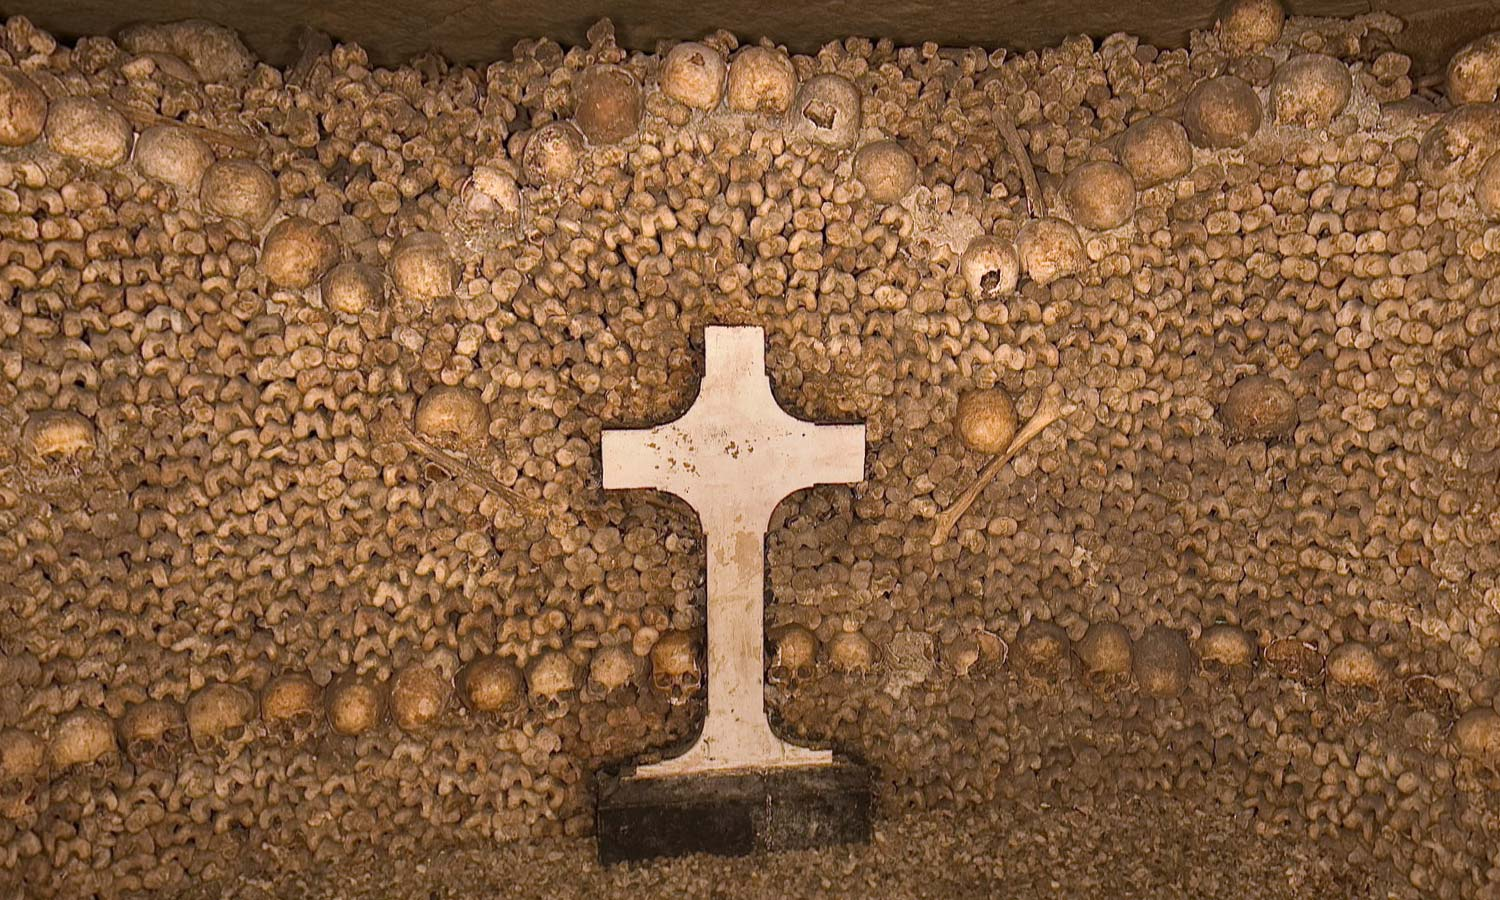 Paris catacombs and other strange places you can explore virtually